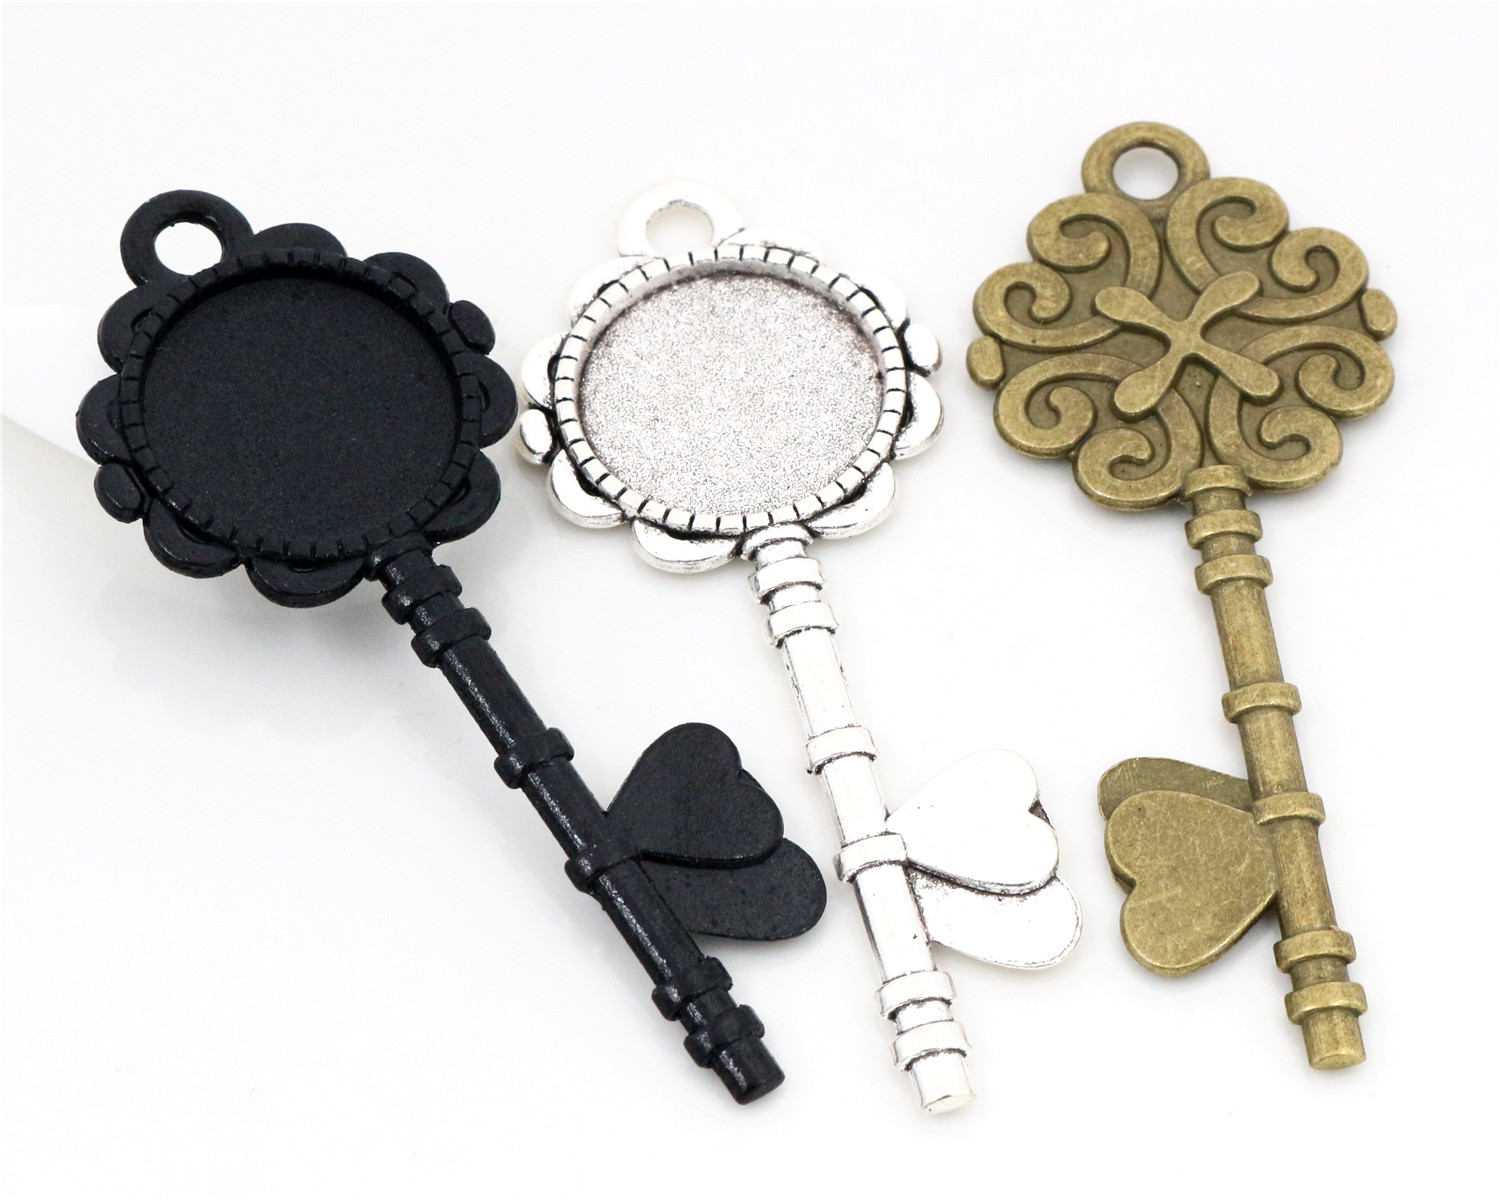 5pcs 20mm Inner Size Black And Antique Silver And Bronze Key Style Cabochon Base Setting Charms Pendant